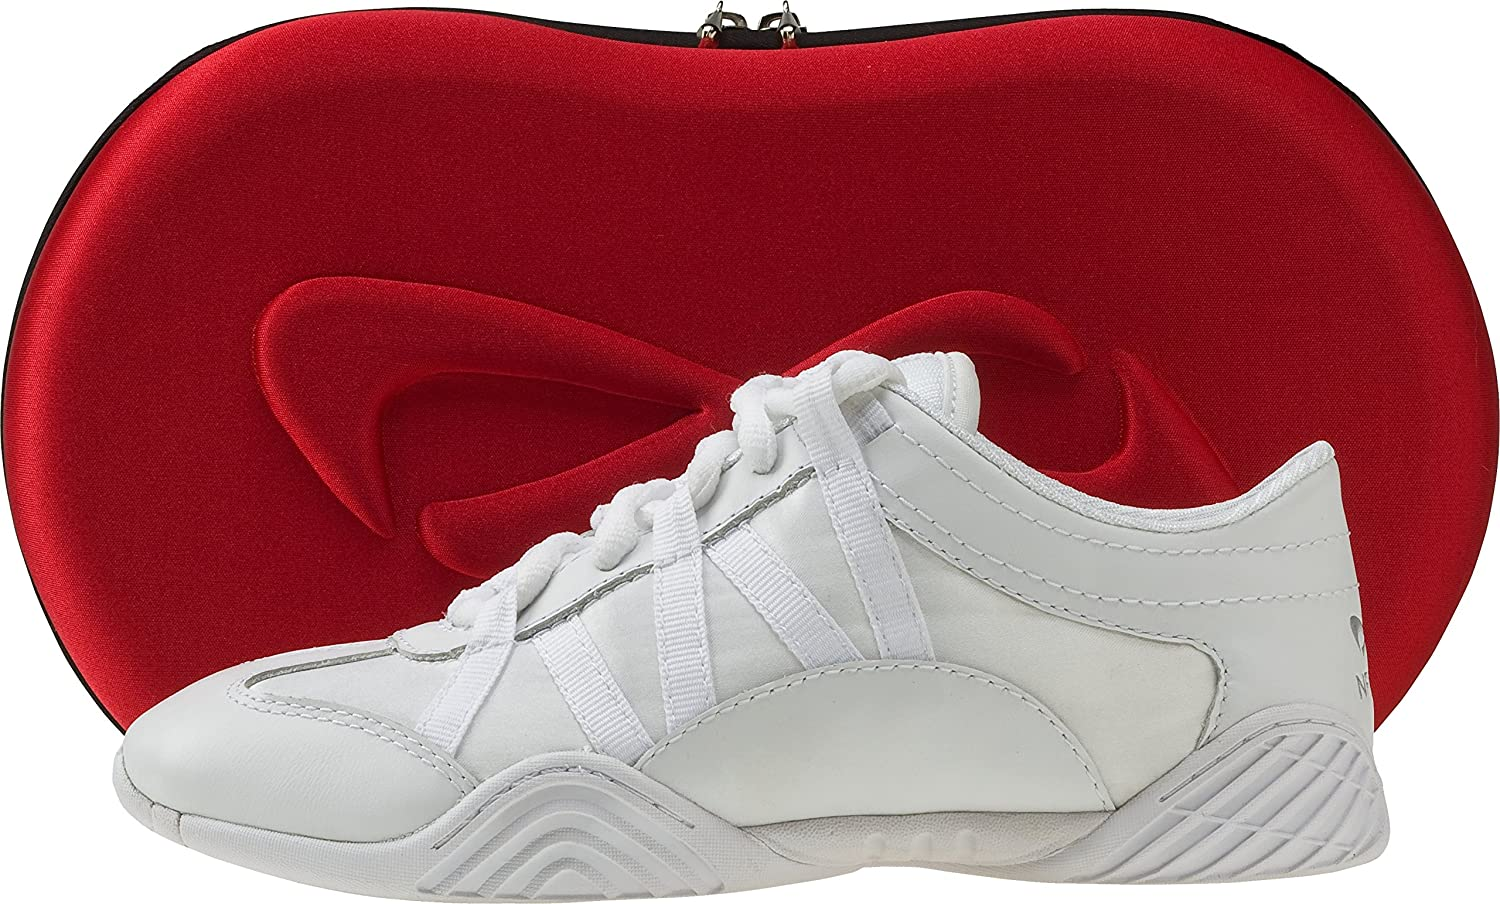 2400dfc95953 Amazon.com  Nfinity Youth Evolution Cheer Shoes  Sports   Outdoors